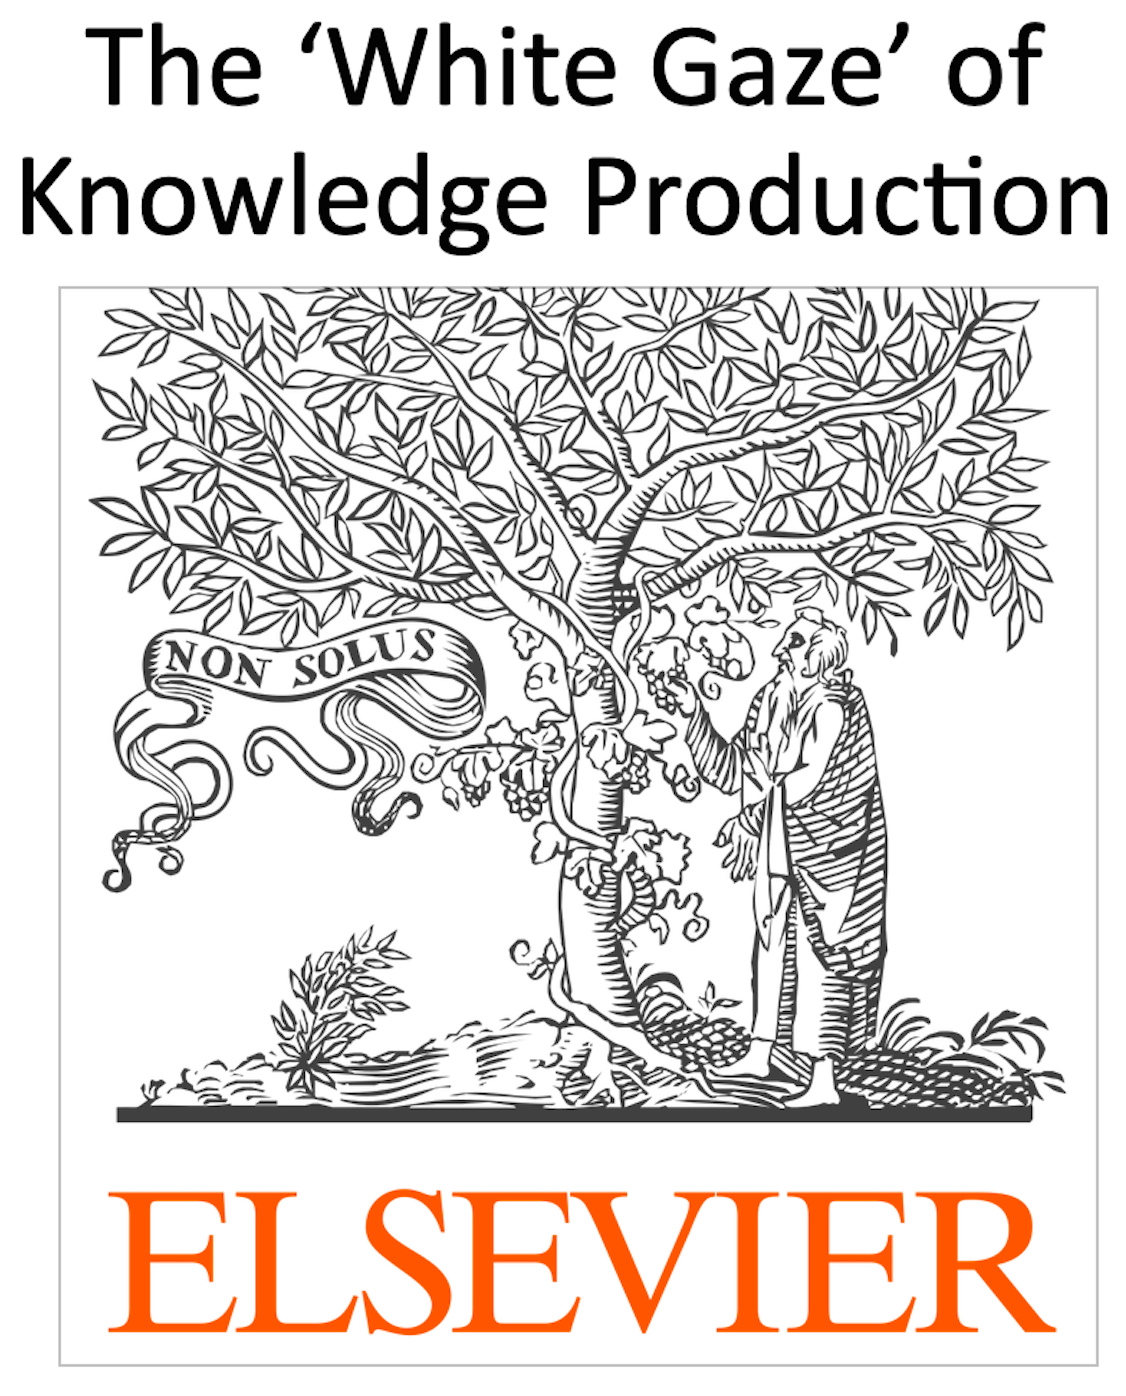 The Elsevier logo with added text at the top